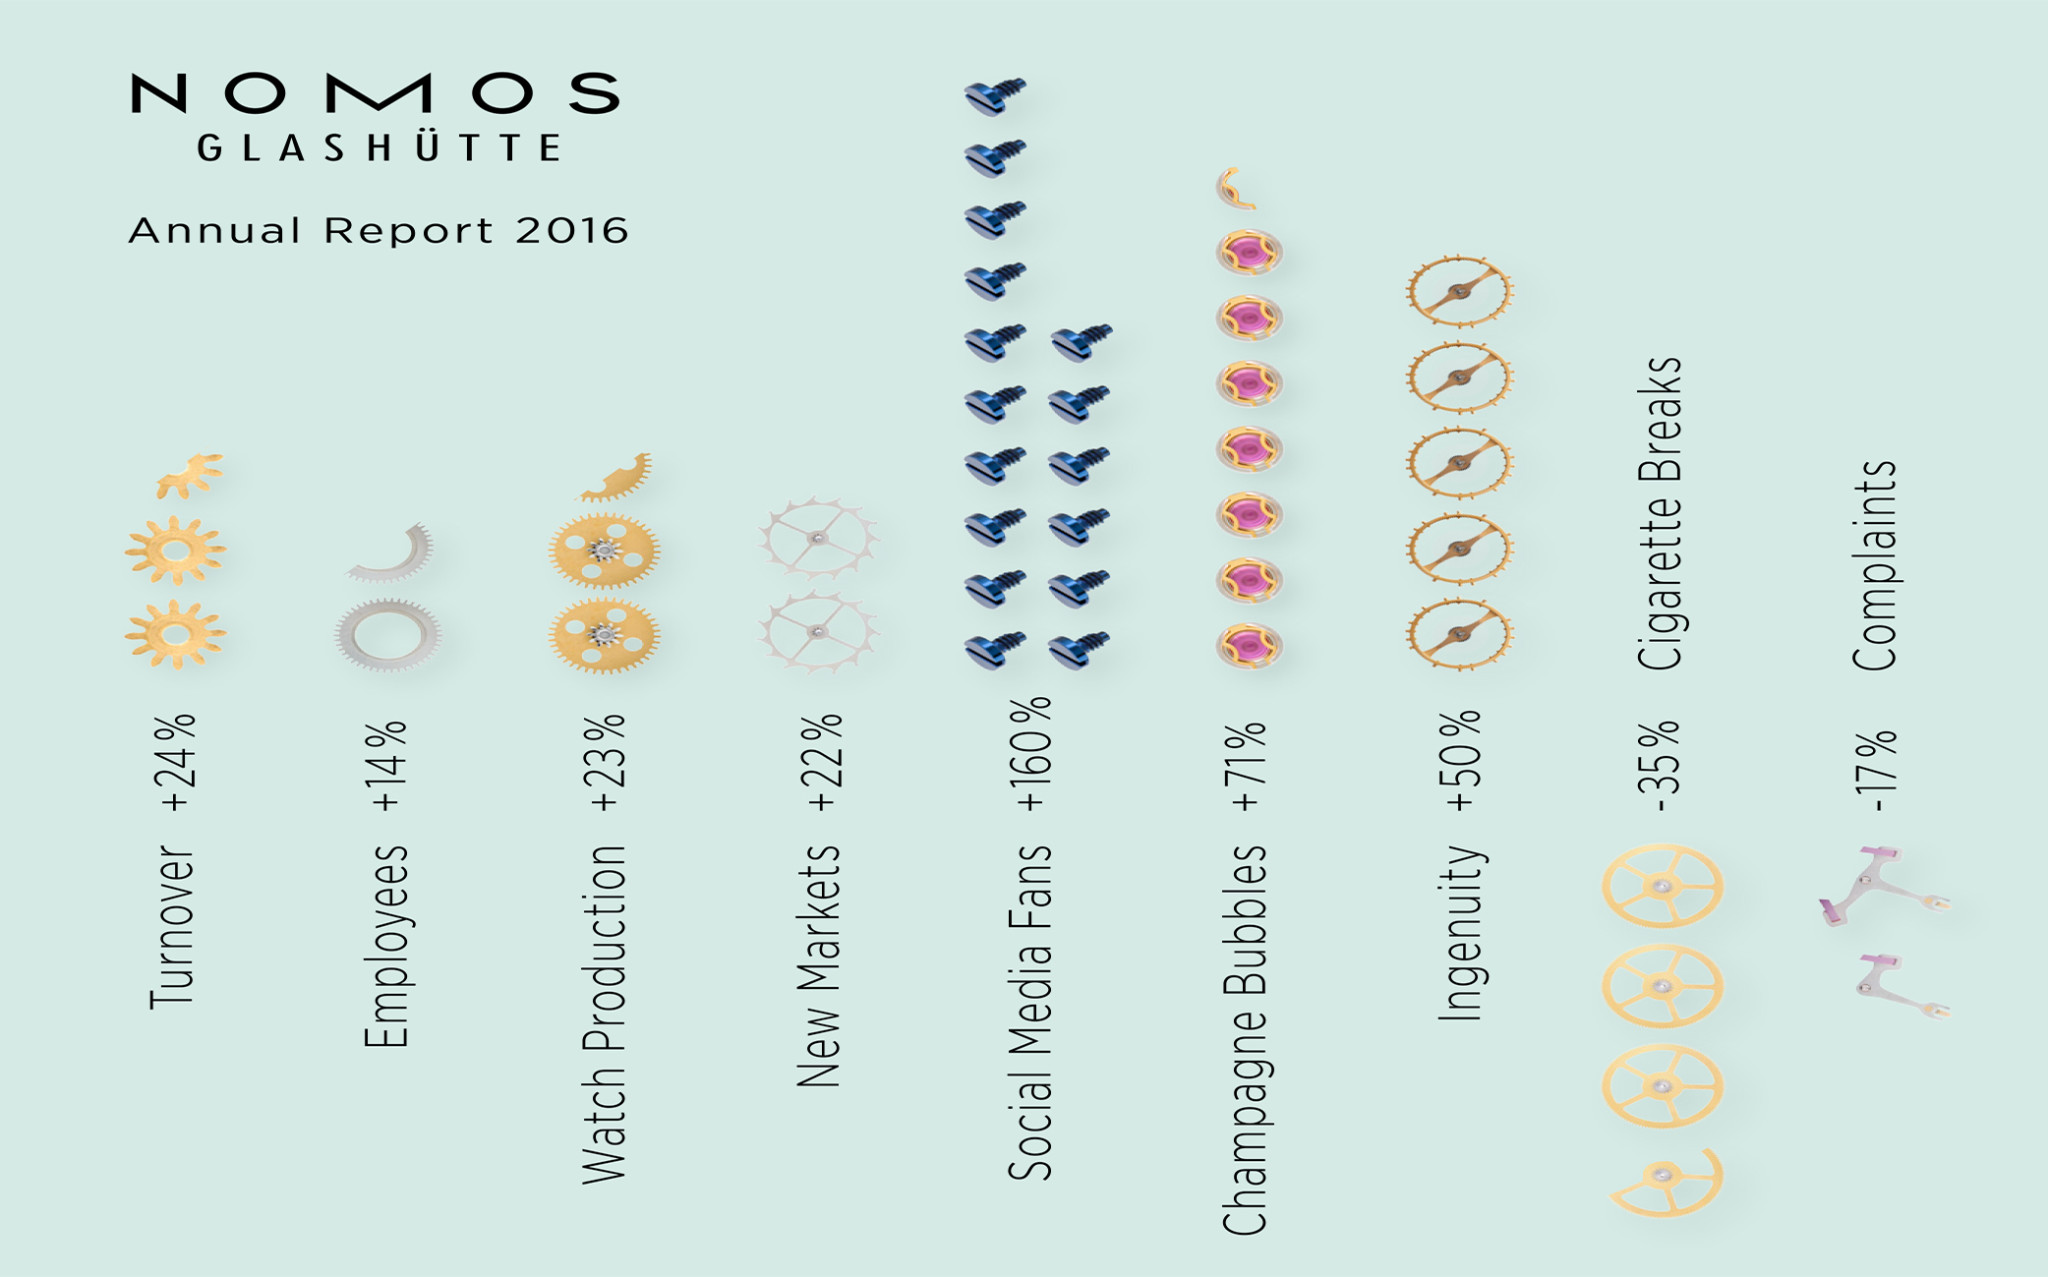 NOMOS_Infographic_Annual_Report